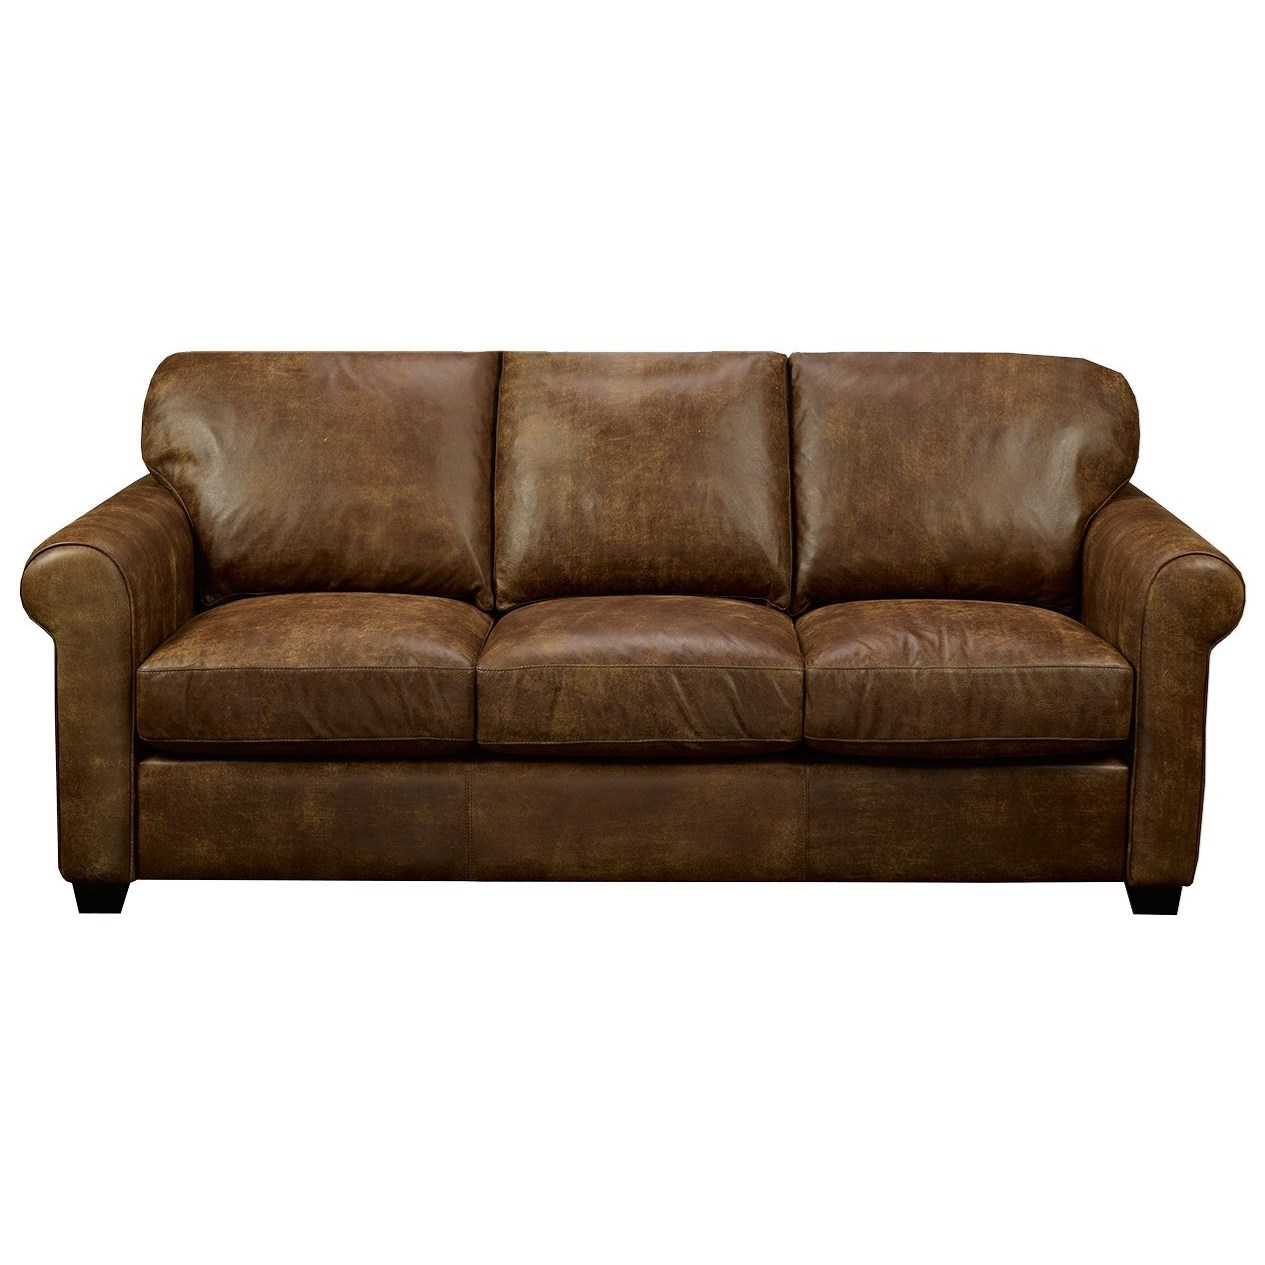 classic sofa second hand brown leather kent brentwood classics ace customizable with sock arms stoney